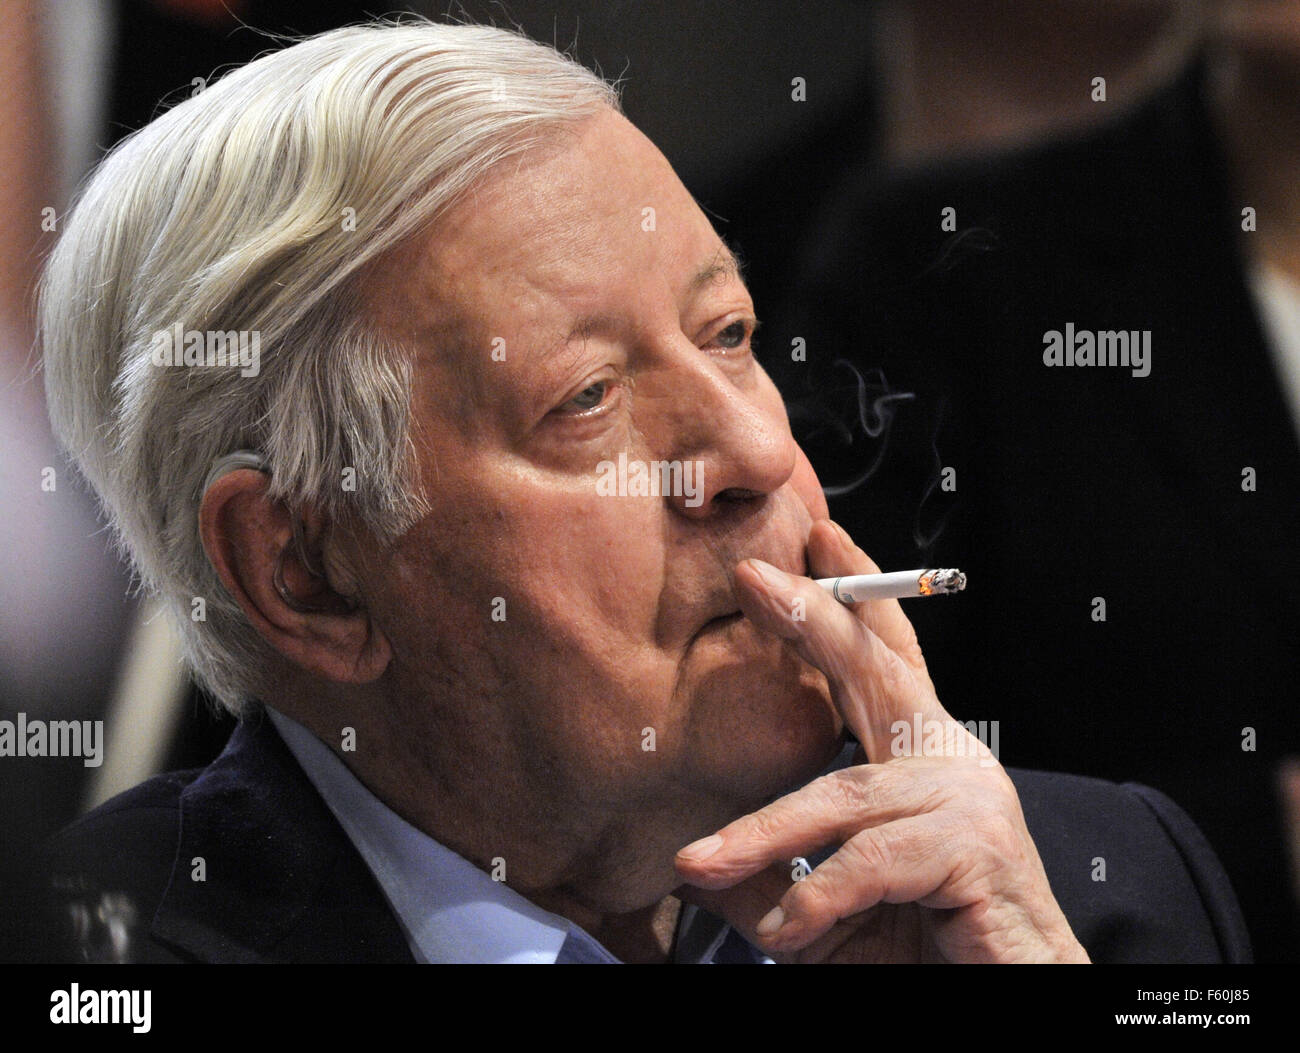 FILE - A file picture dated 18.10.2008 shows former German chancellor Helmut Schmidt smoking a cigarette during - Stock Image